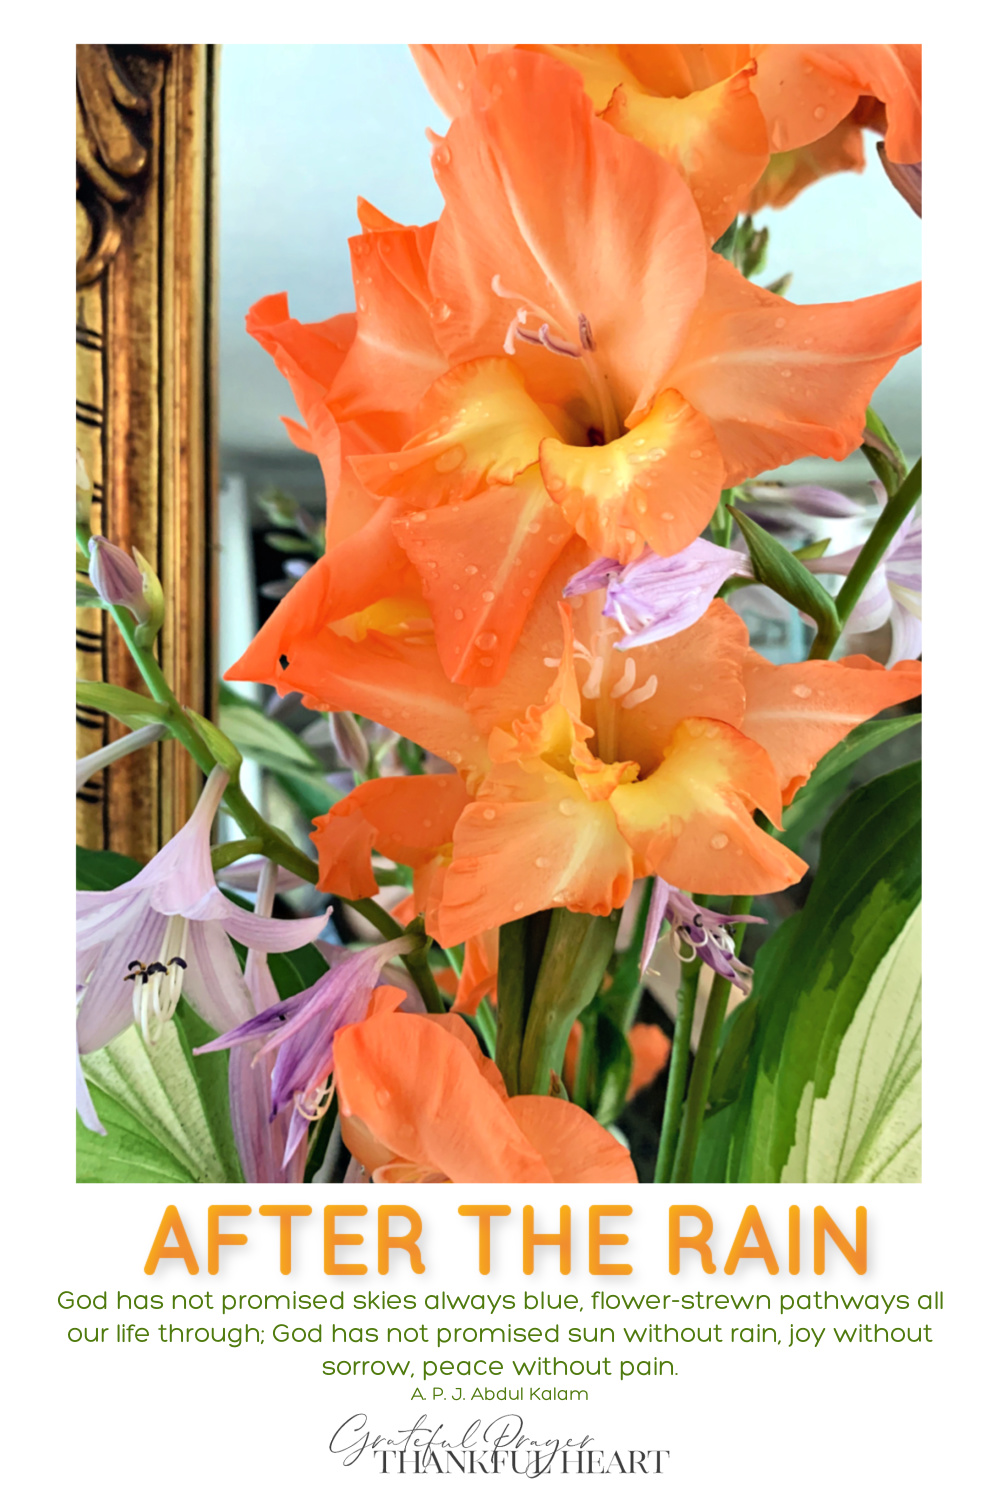 Summertime thunderstorms come with heavy rain and harsh wind, breaking the stems of flowers in the garden. Use them to create simple arrangements to brighten your home and attitude.